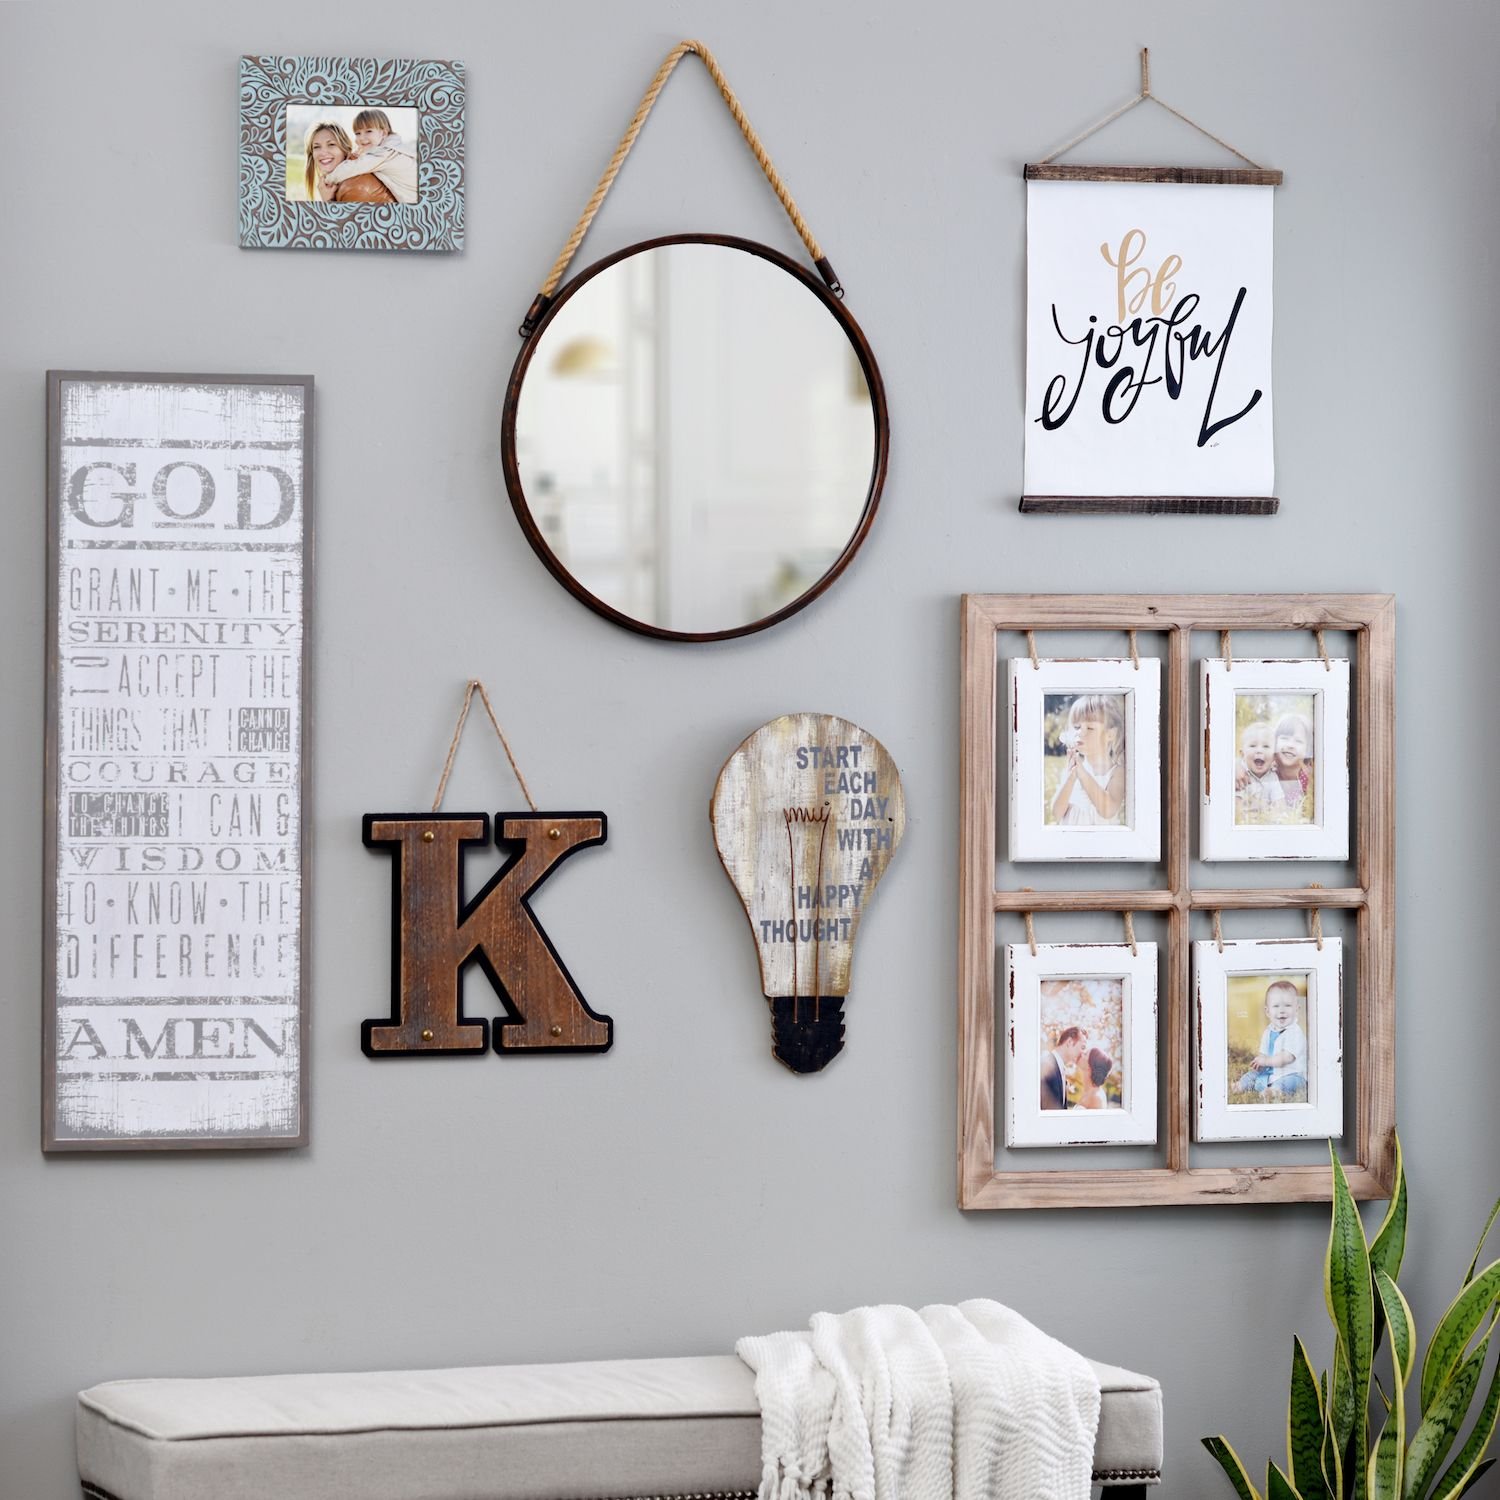 Mix and match all types of wall decor for an eclectic gallery wall mix and match all types of wall decor for an eclectic gallery wall hang your favorite wall quotes next to pictures of your family with an interesting amipublicfo Choice Image